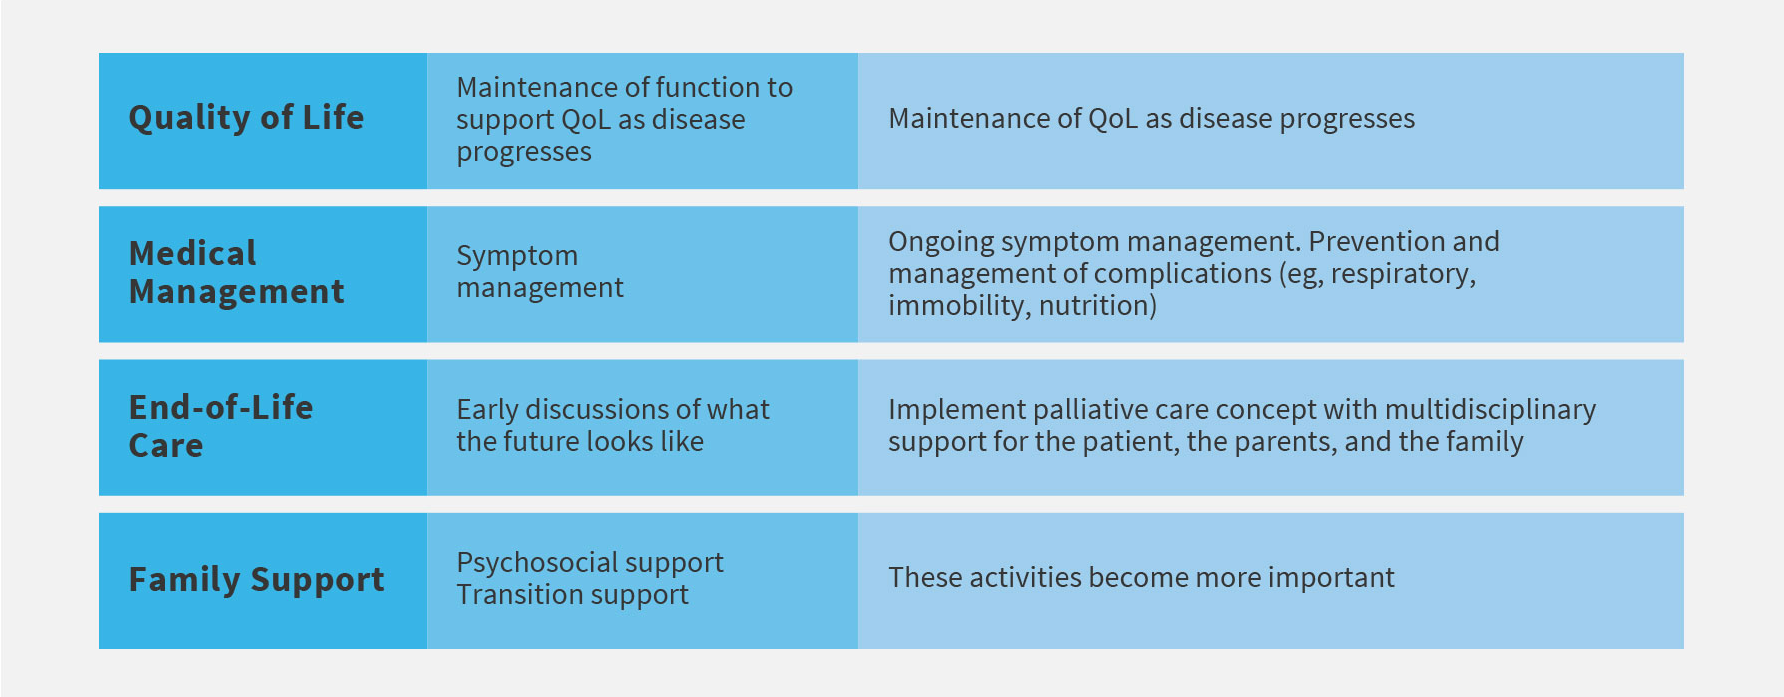 Understanding the needs of families across the spectrum of care can make an important difference in the approach to CLN2-specific management strategies.<sup>1</sup>